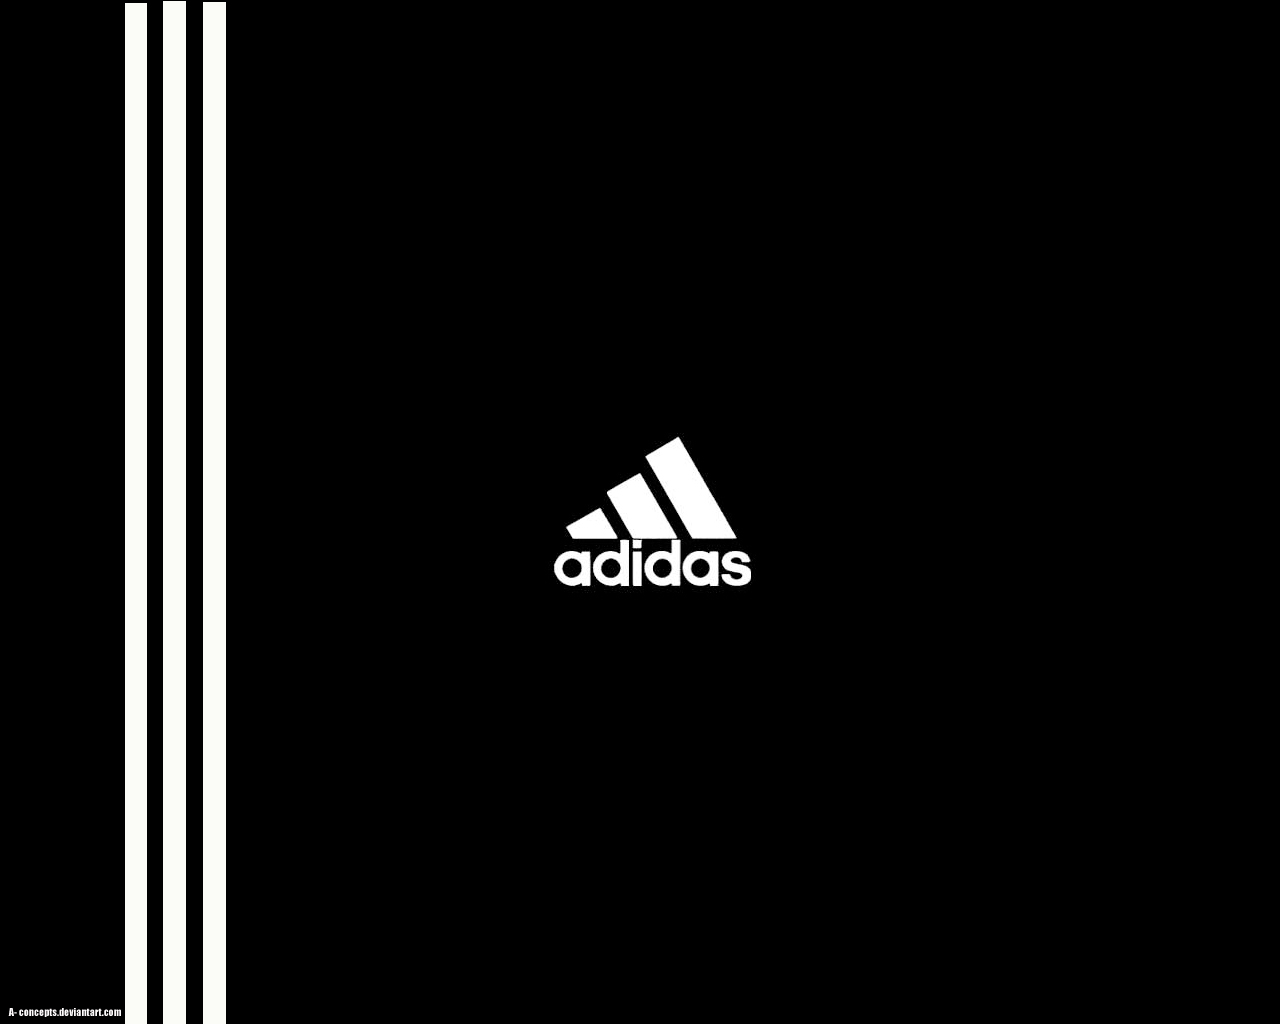 14309 download wallpaper Logos, Background, Adidas screensavers and pictures for free